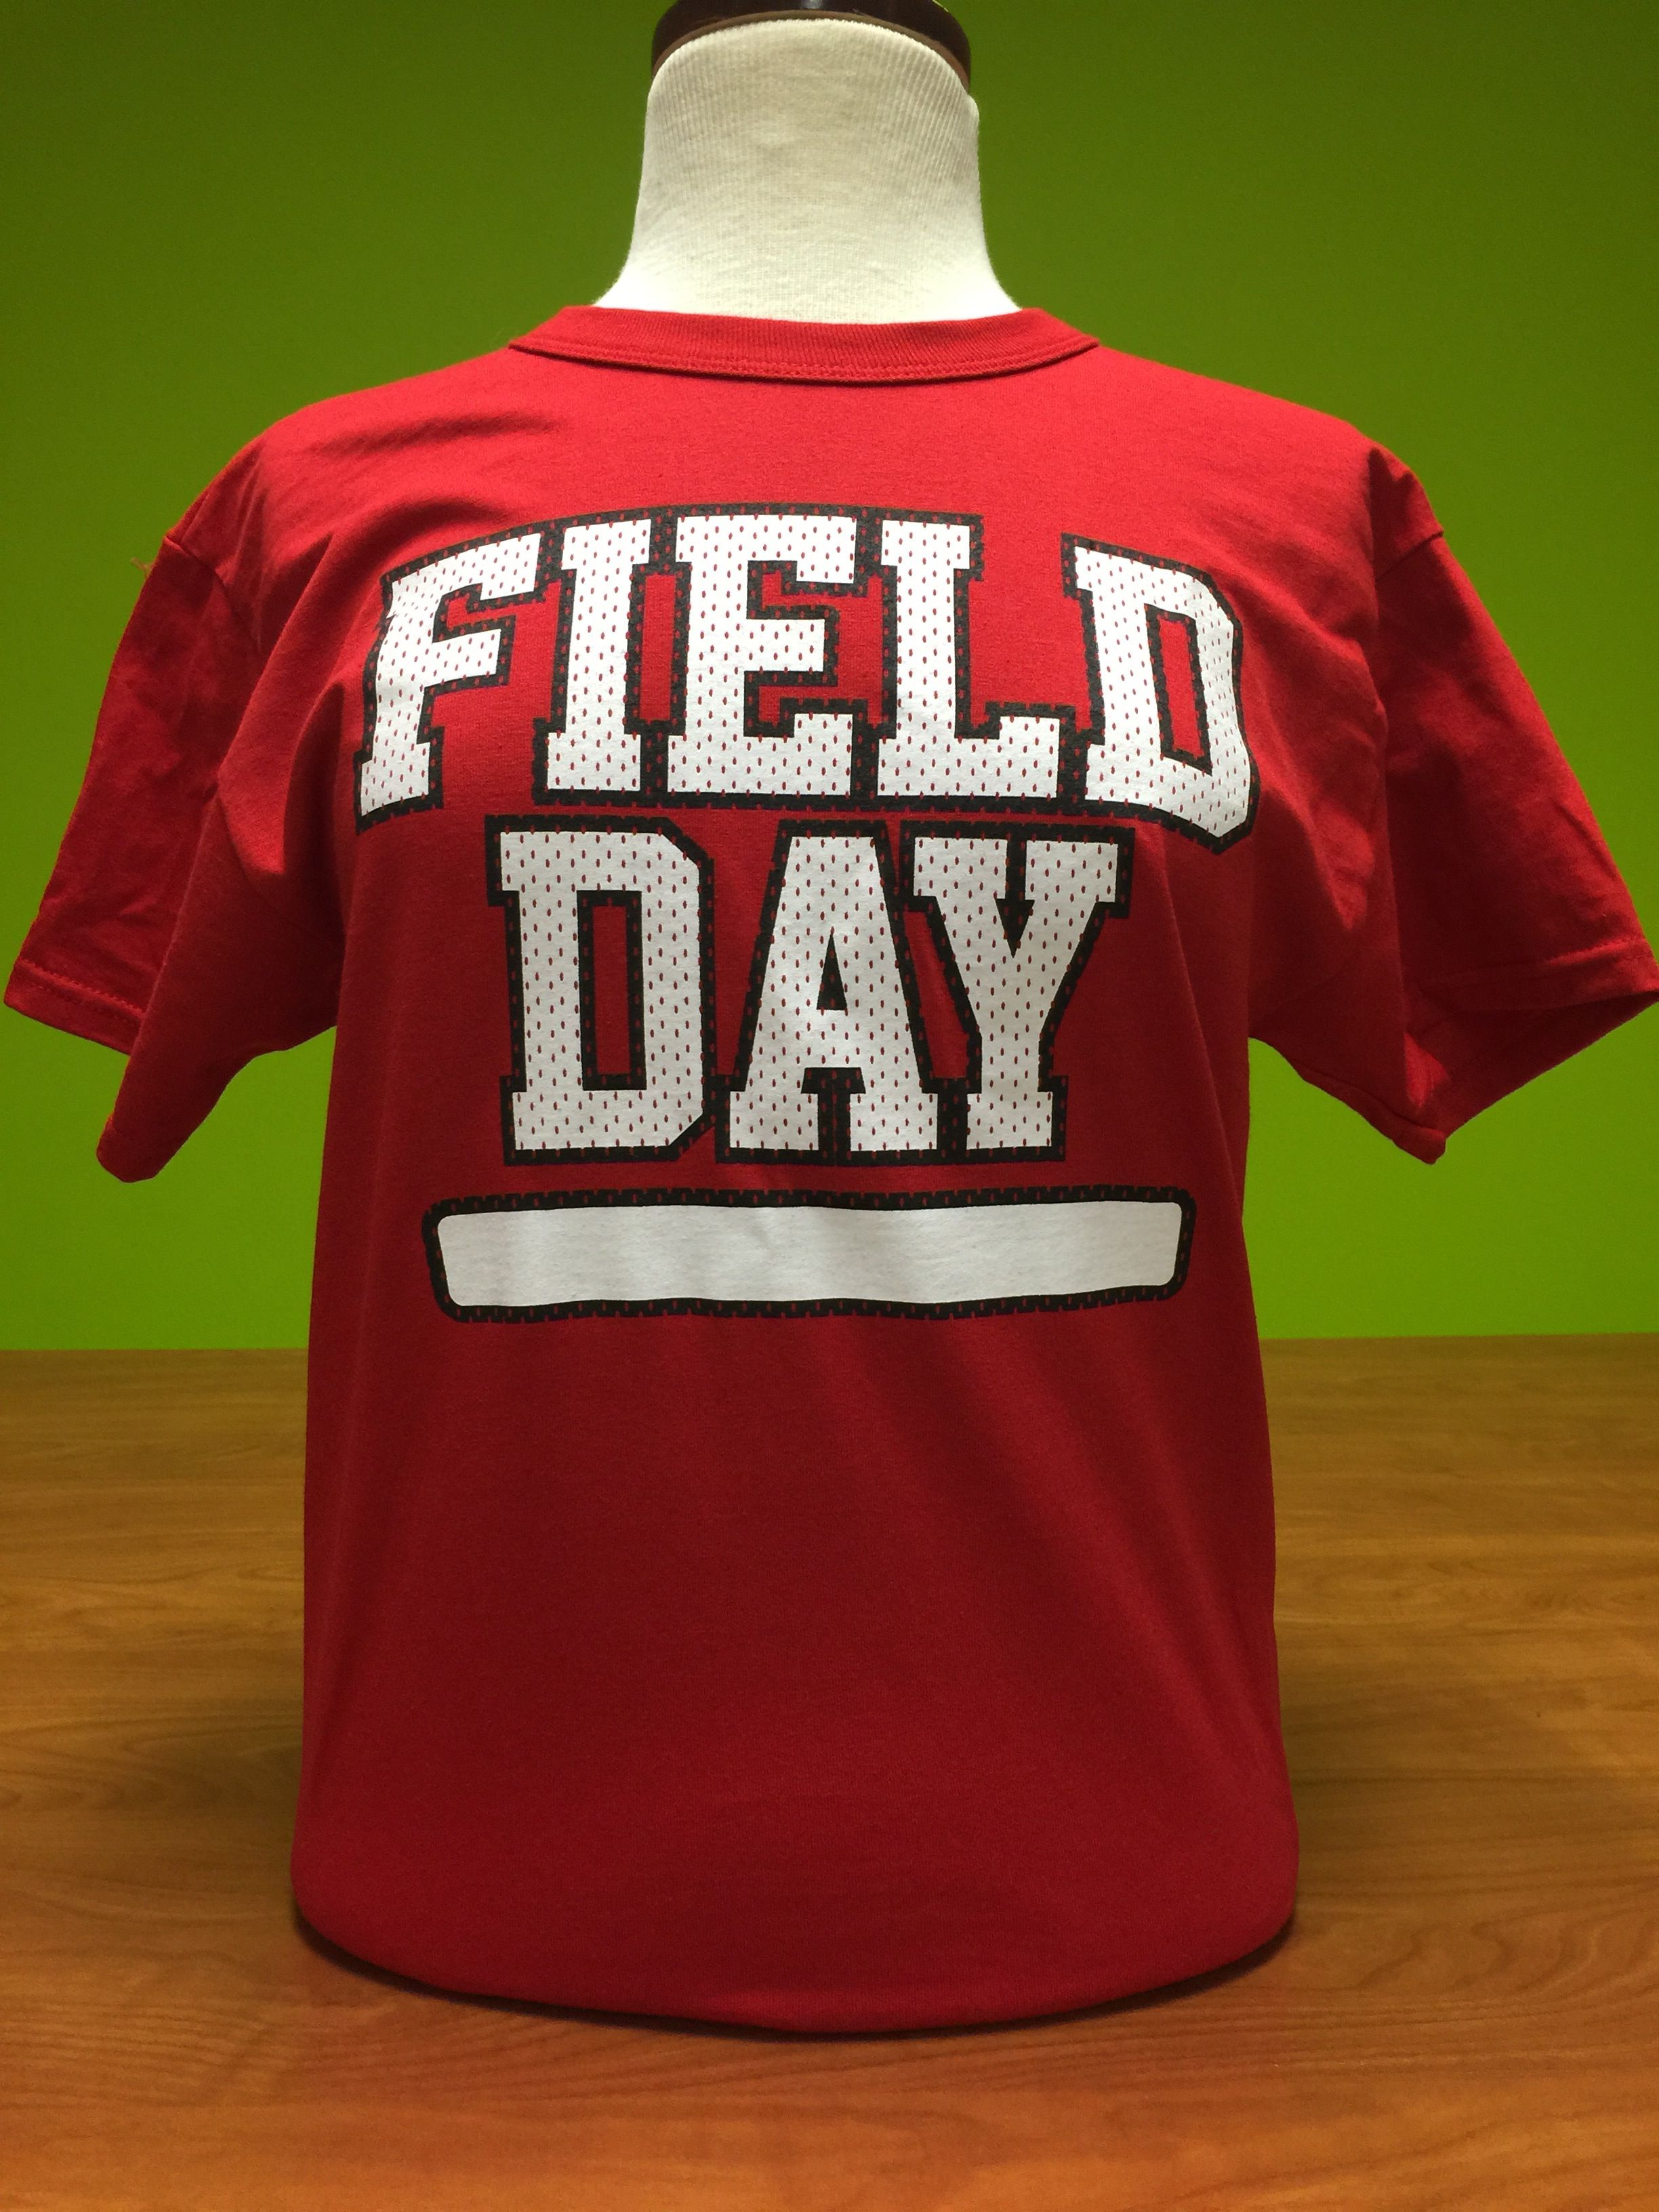 Fielddayusa Basic Athletic Mesh Love This Simple Design Great